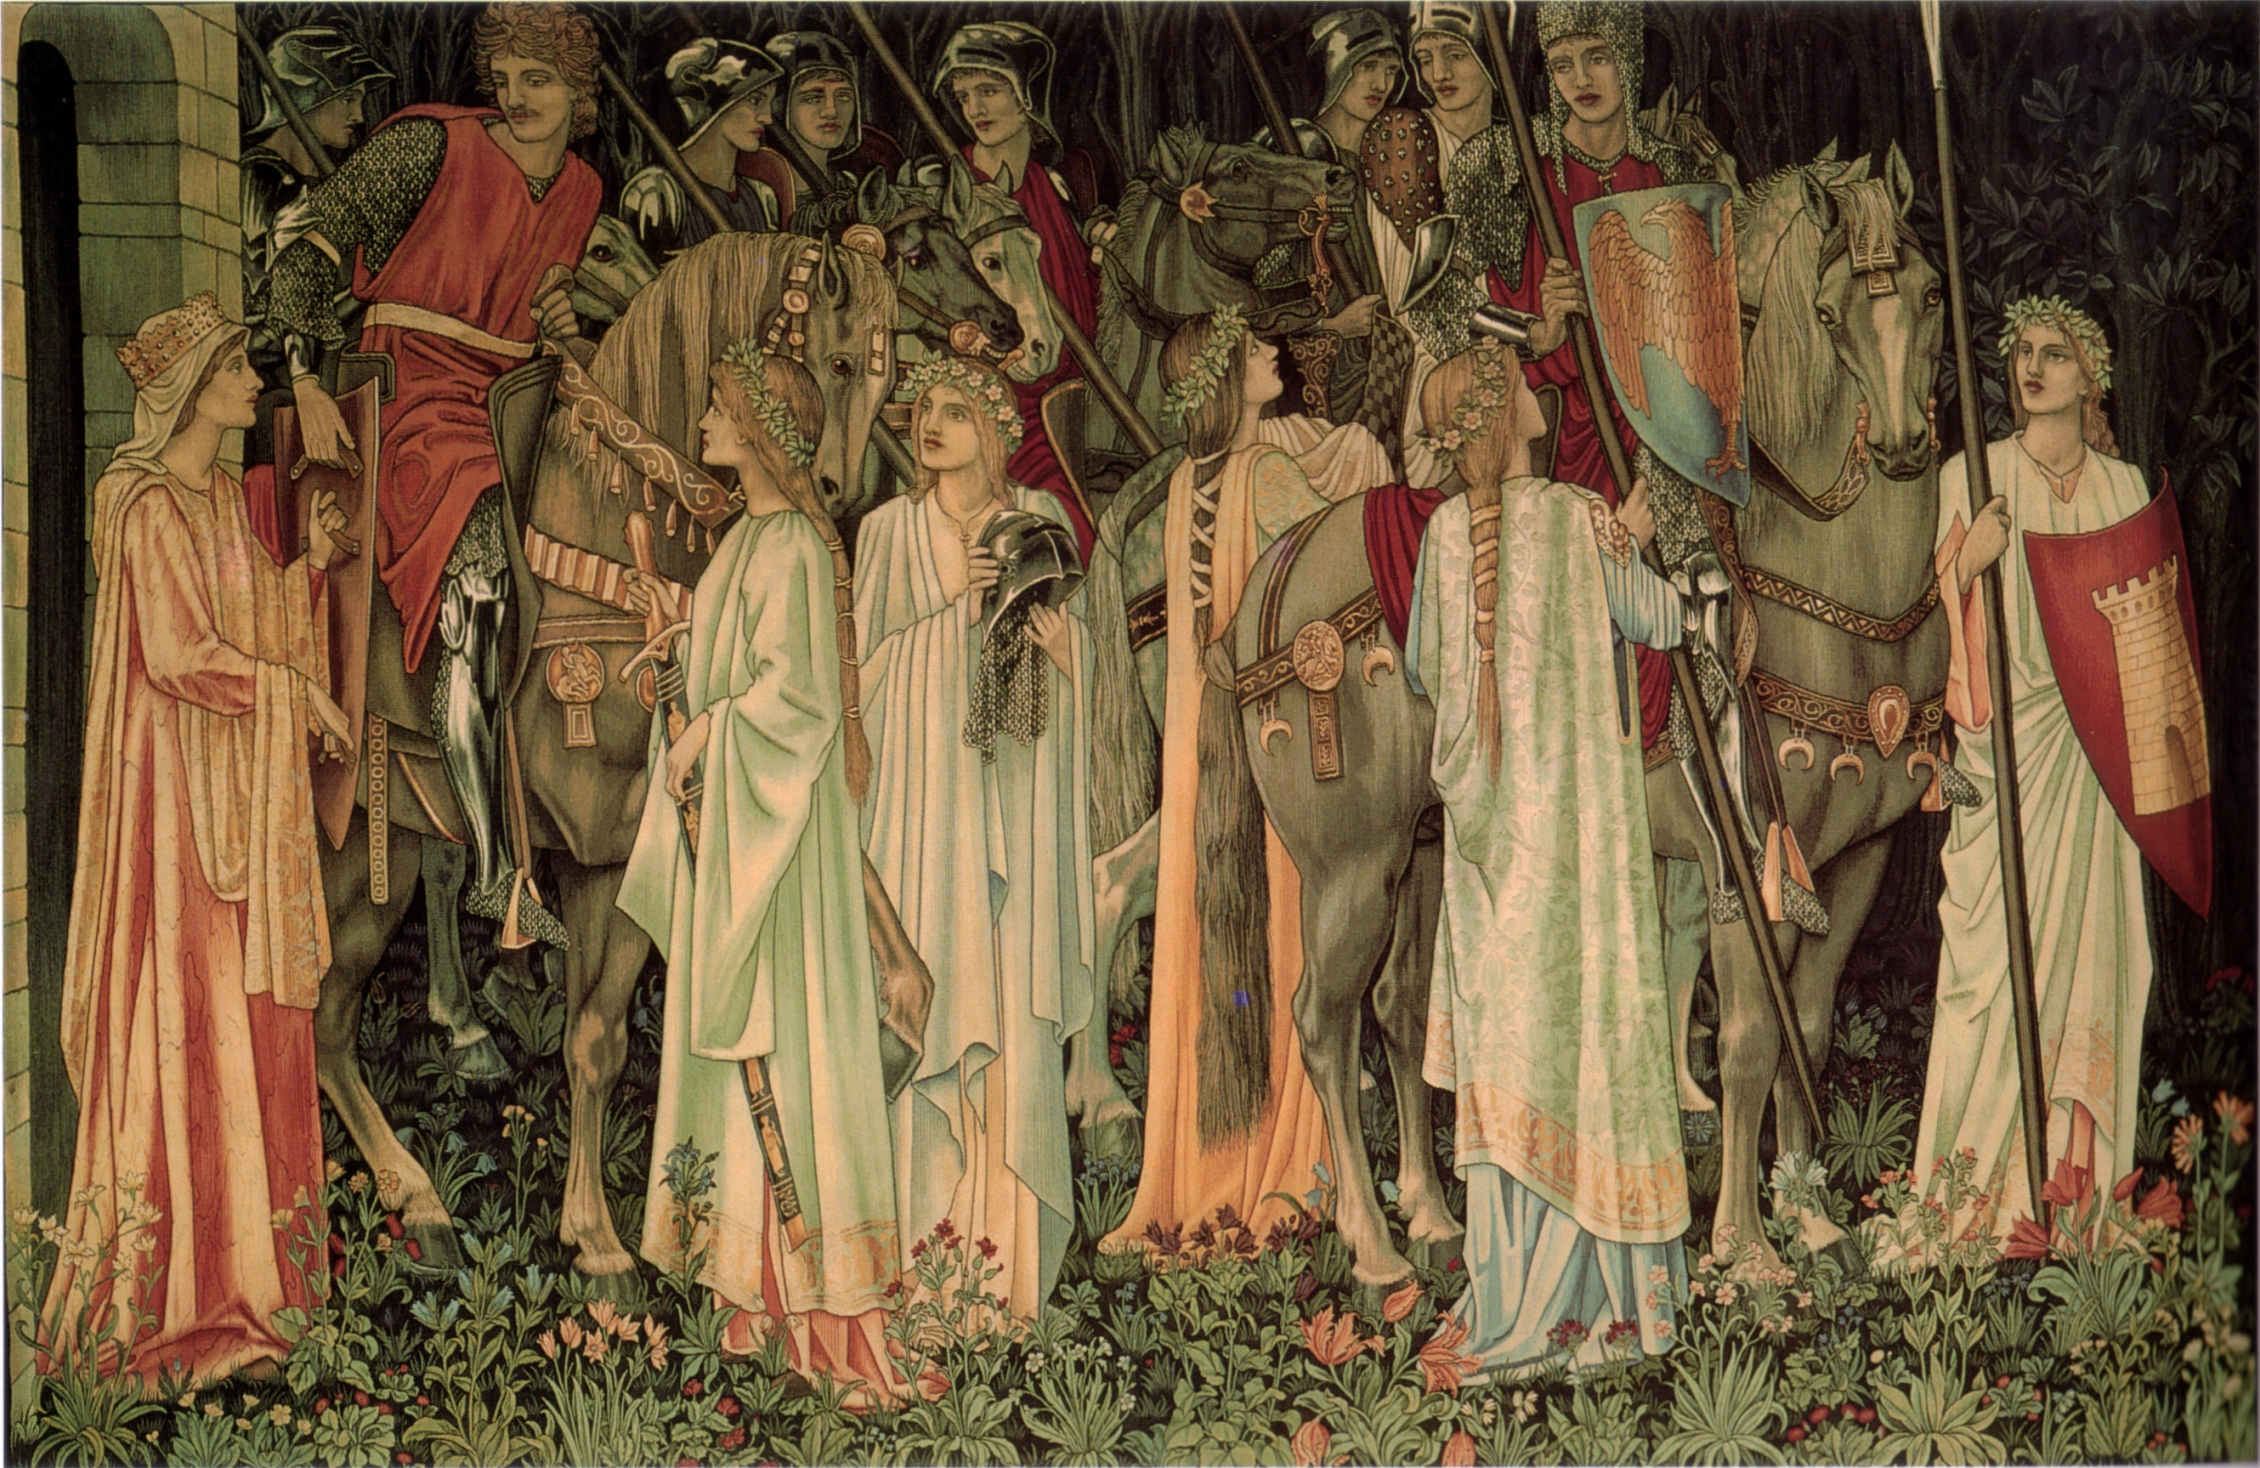 8_20_Holy_Grail_Tapestry_-The_Arming_and_Departure_of_the_Kniights.jpg